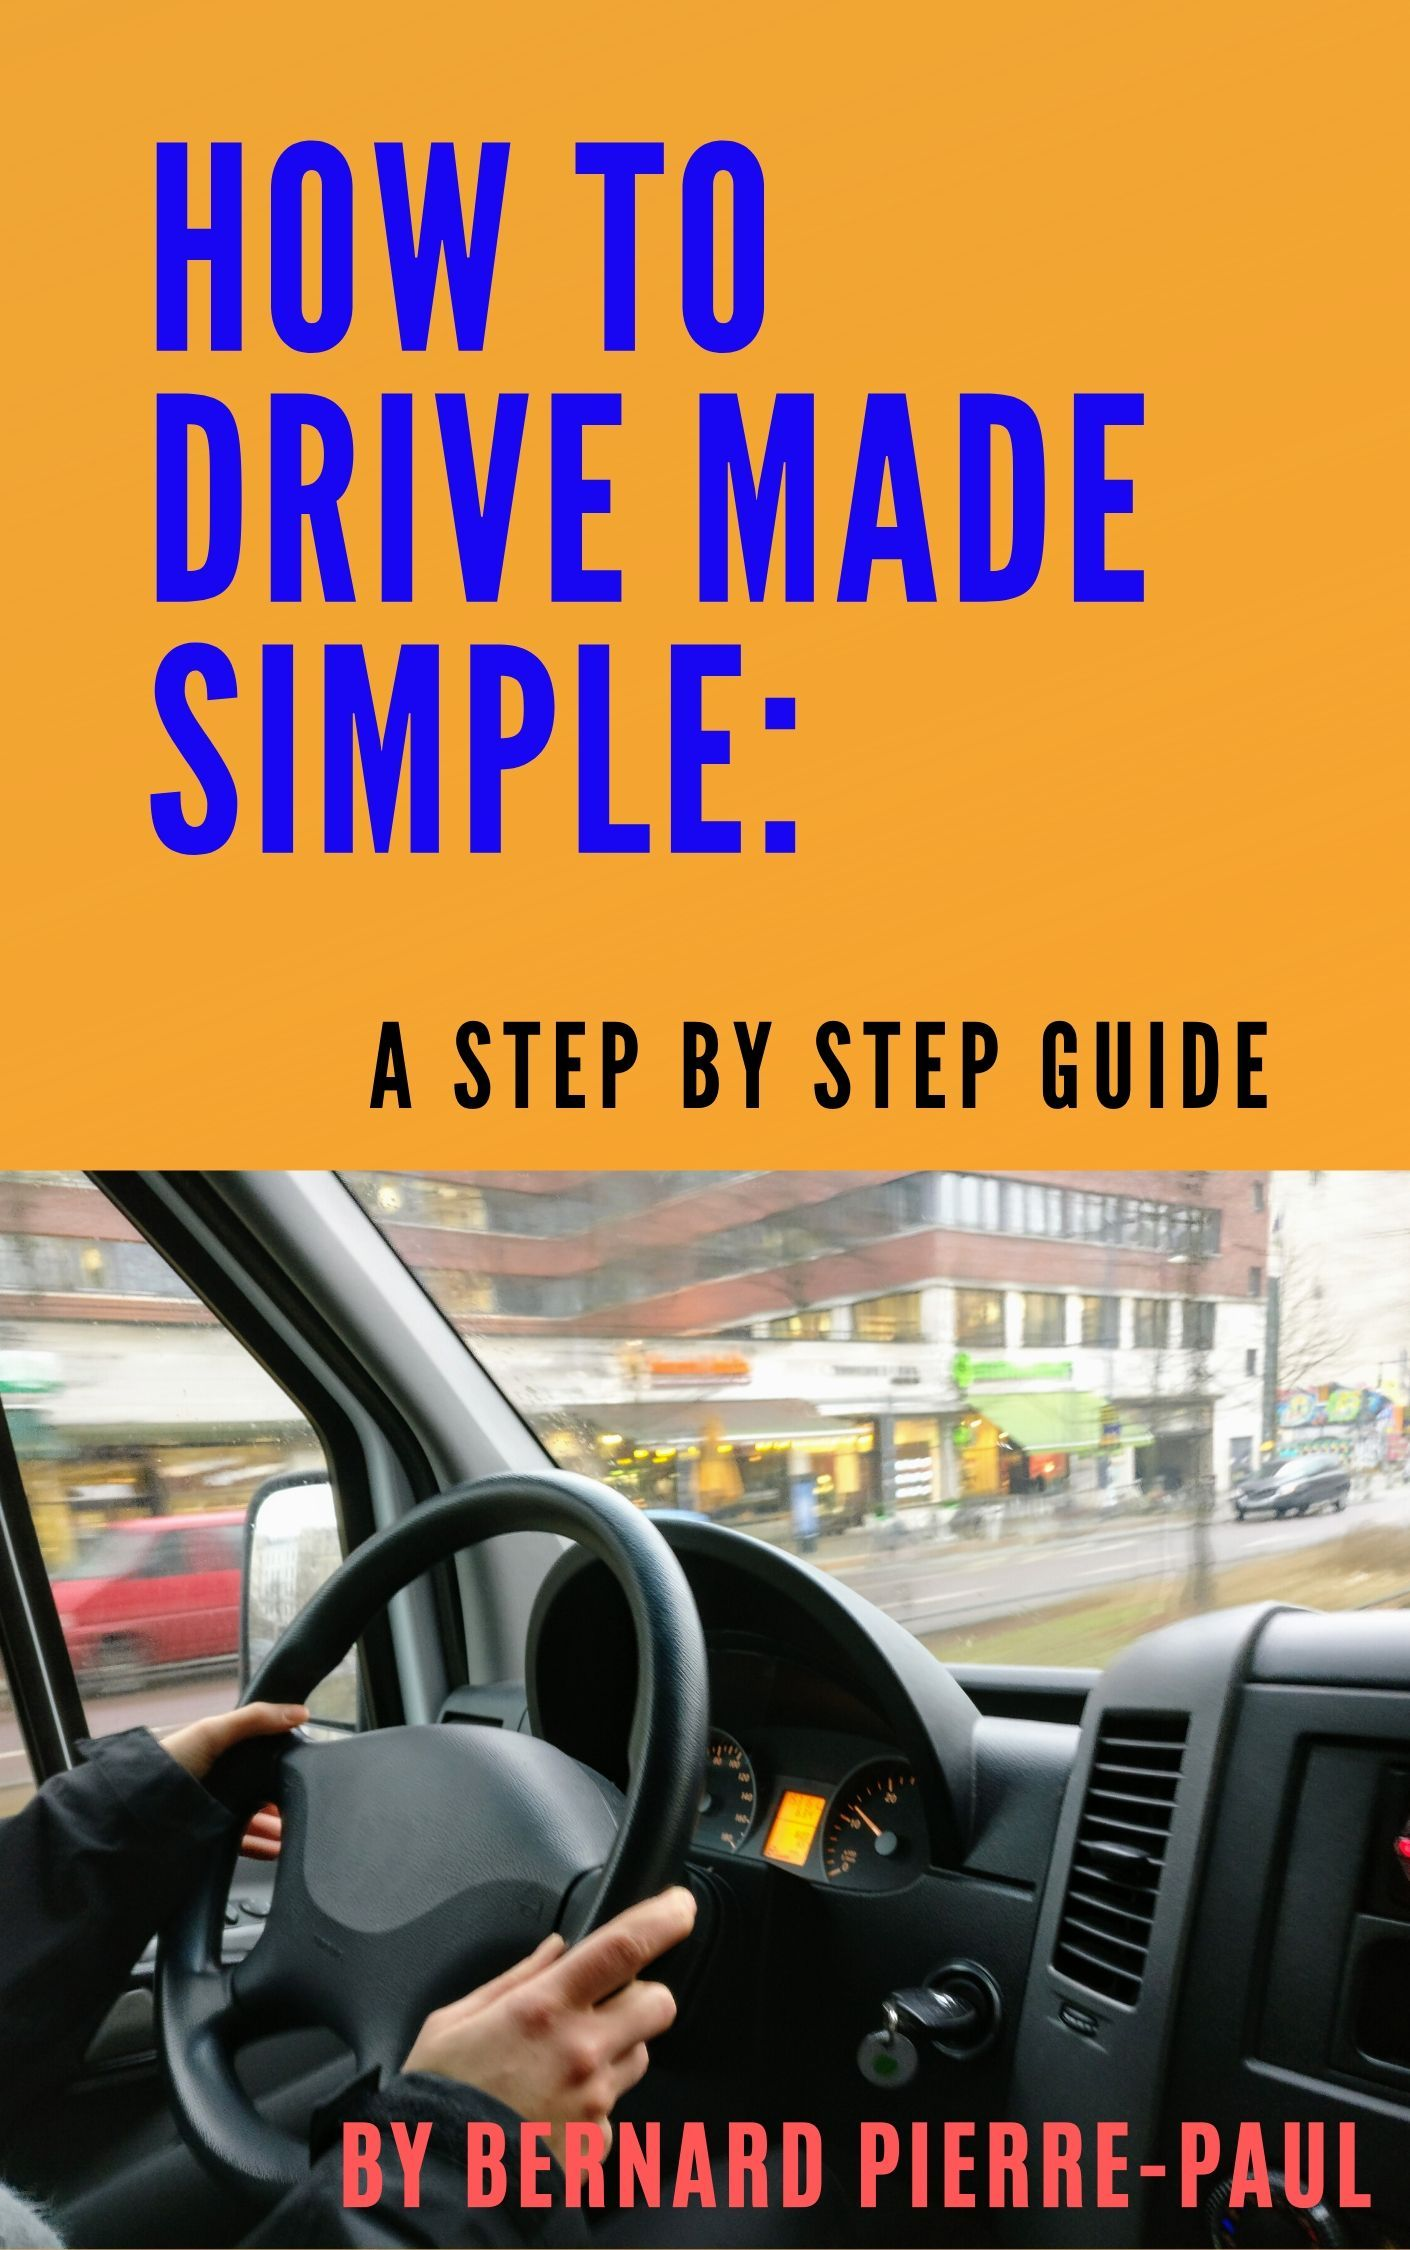 Free Ebook How To Drive A Car For Beginners Driving Tips For Beginners Driving For Beginners Learning To Drive Tips